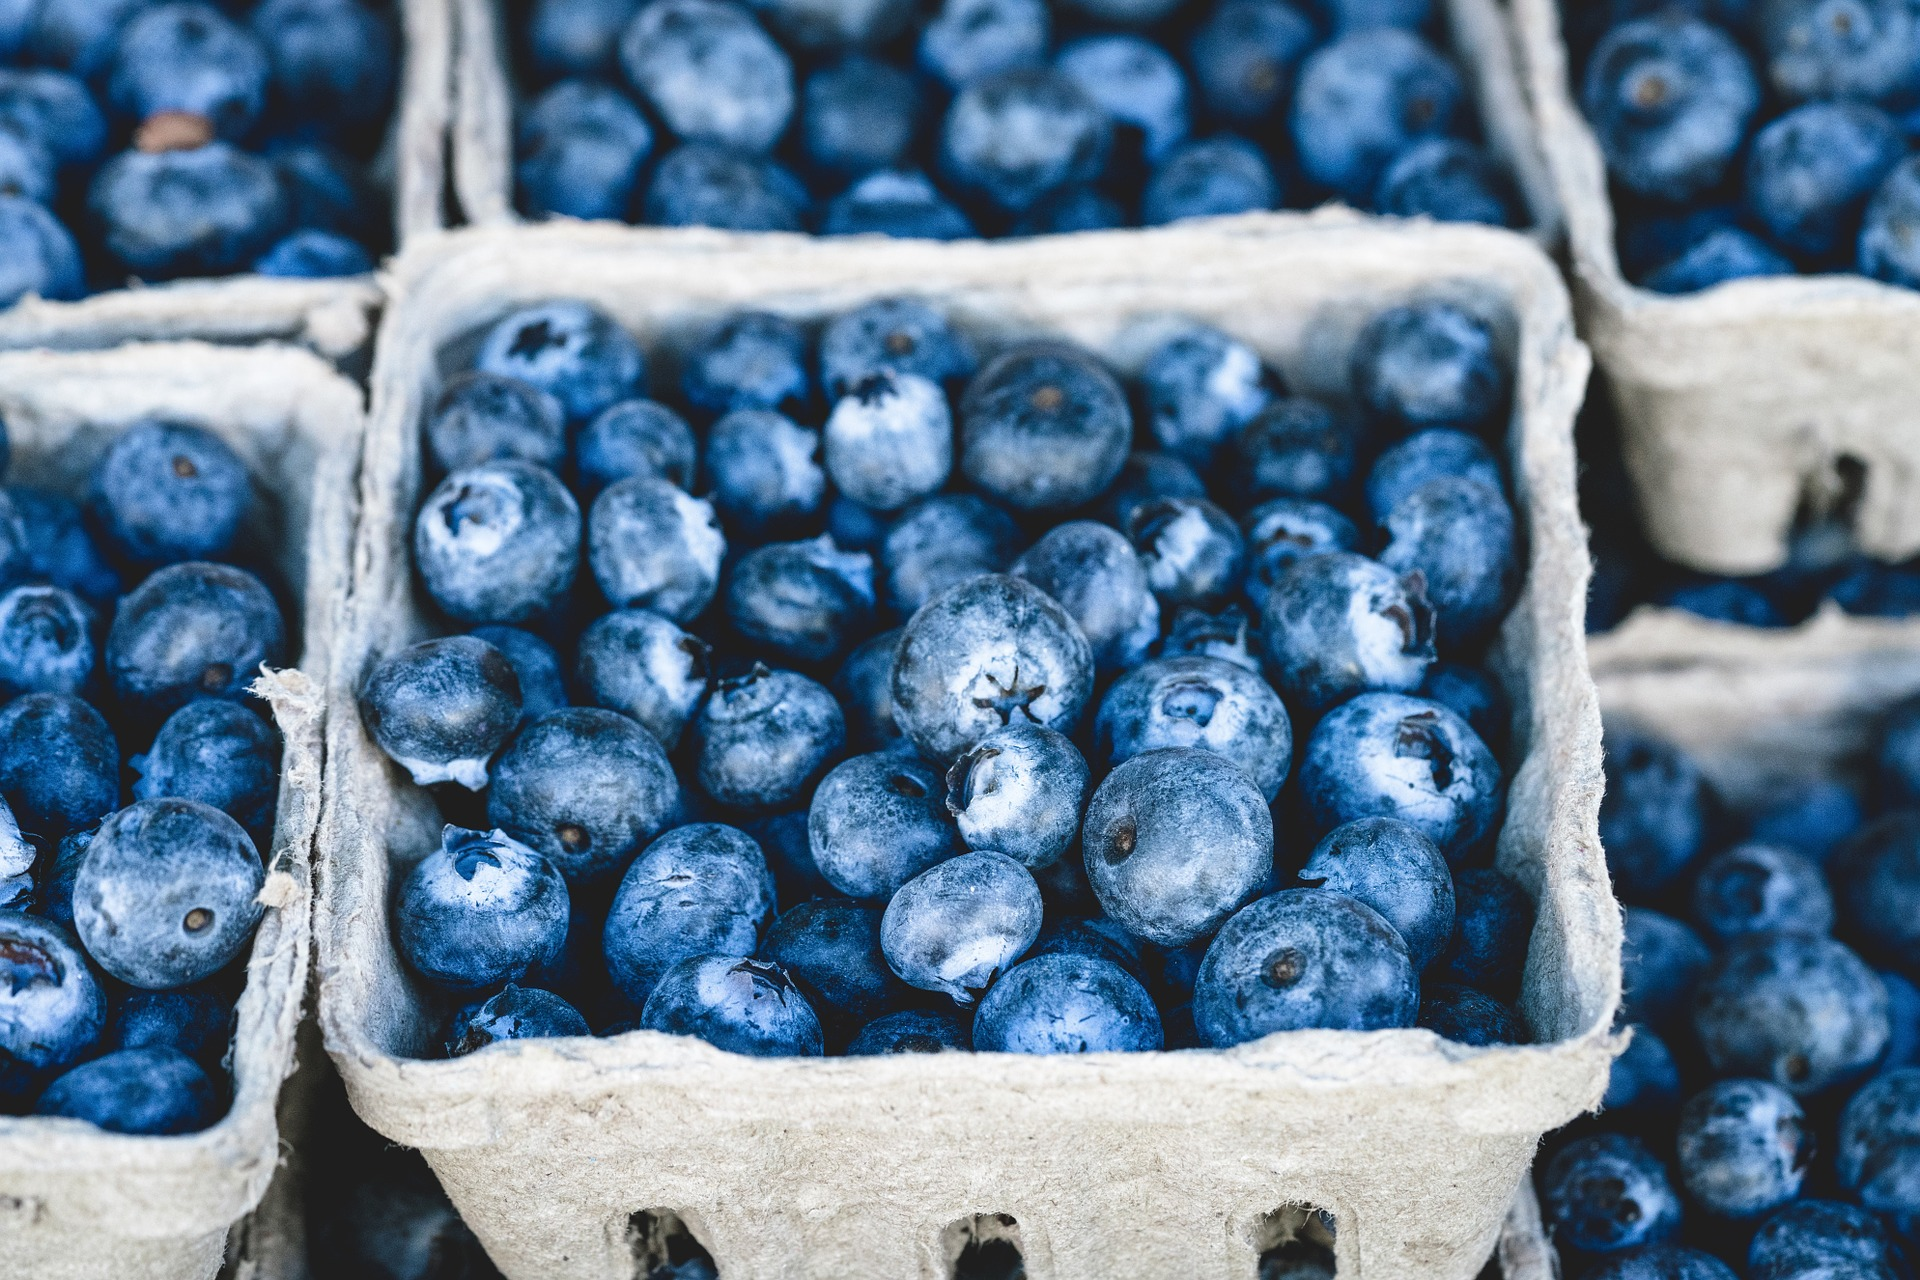 blueberries, sometimes used by people gambling to get an edge